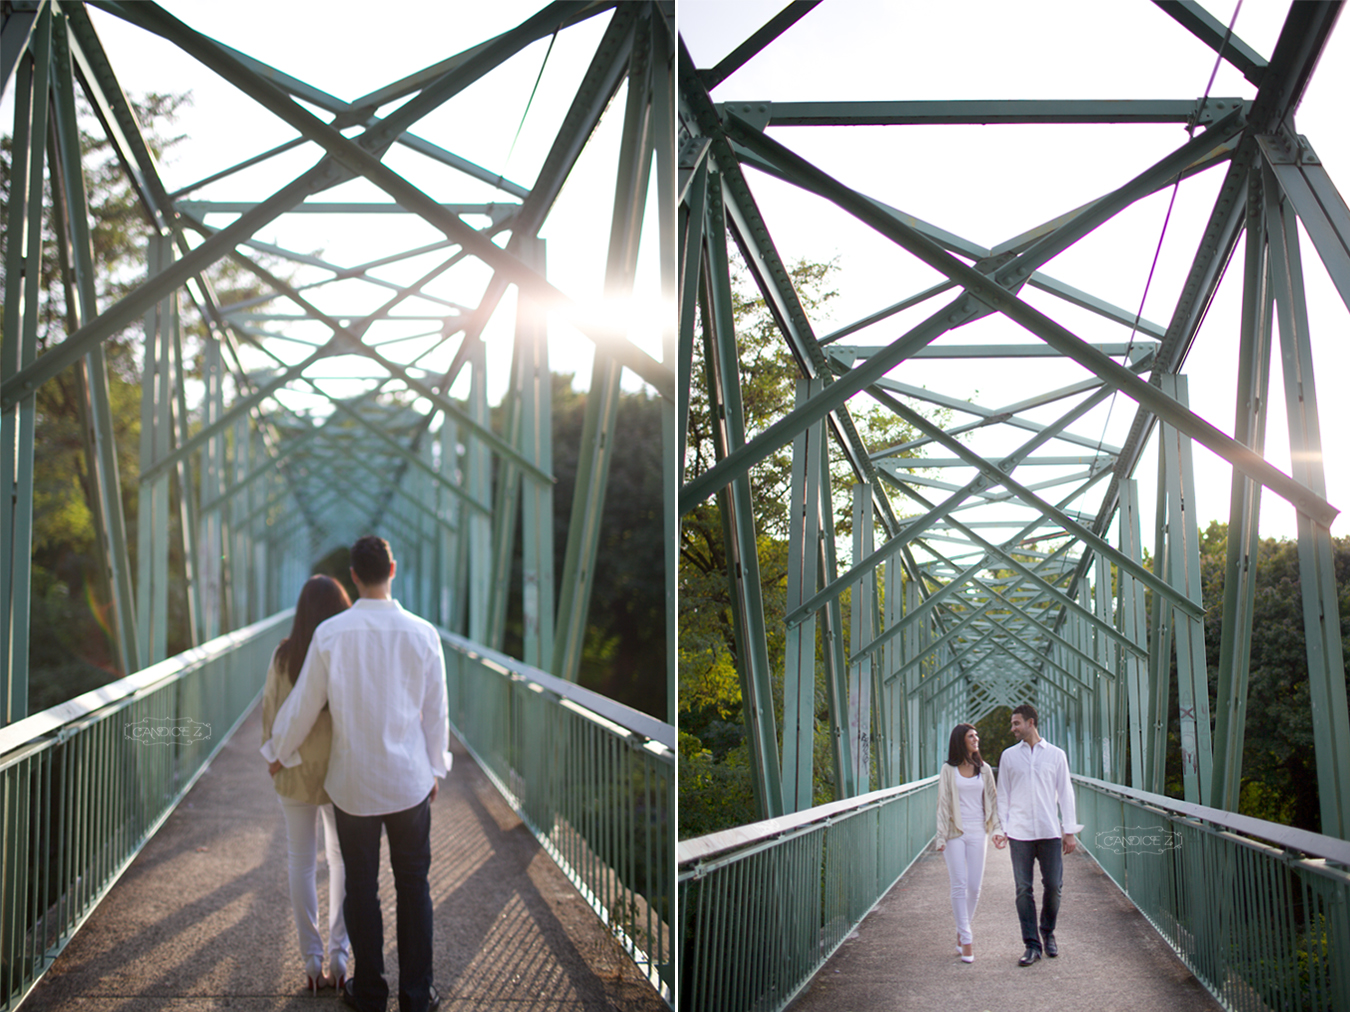 Fairmount_Park_29th_St_Bridge_Engagement.jpg